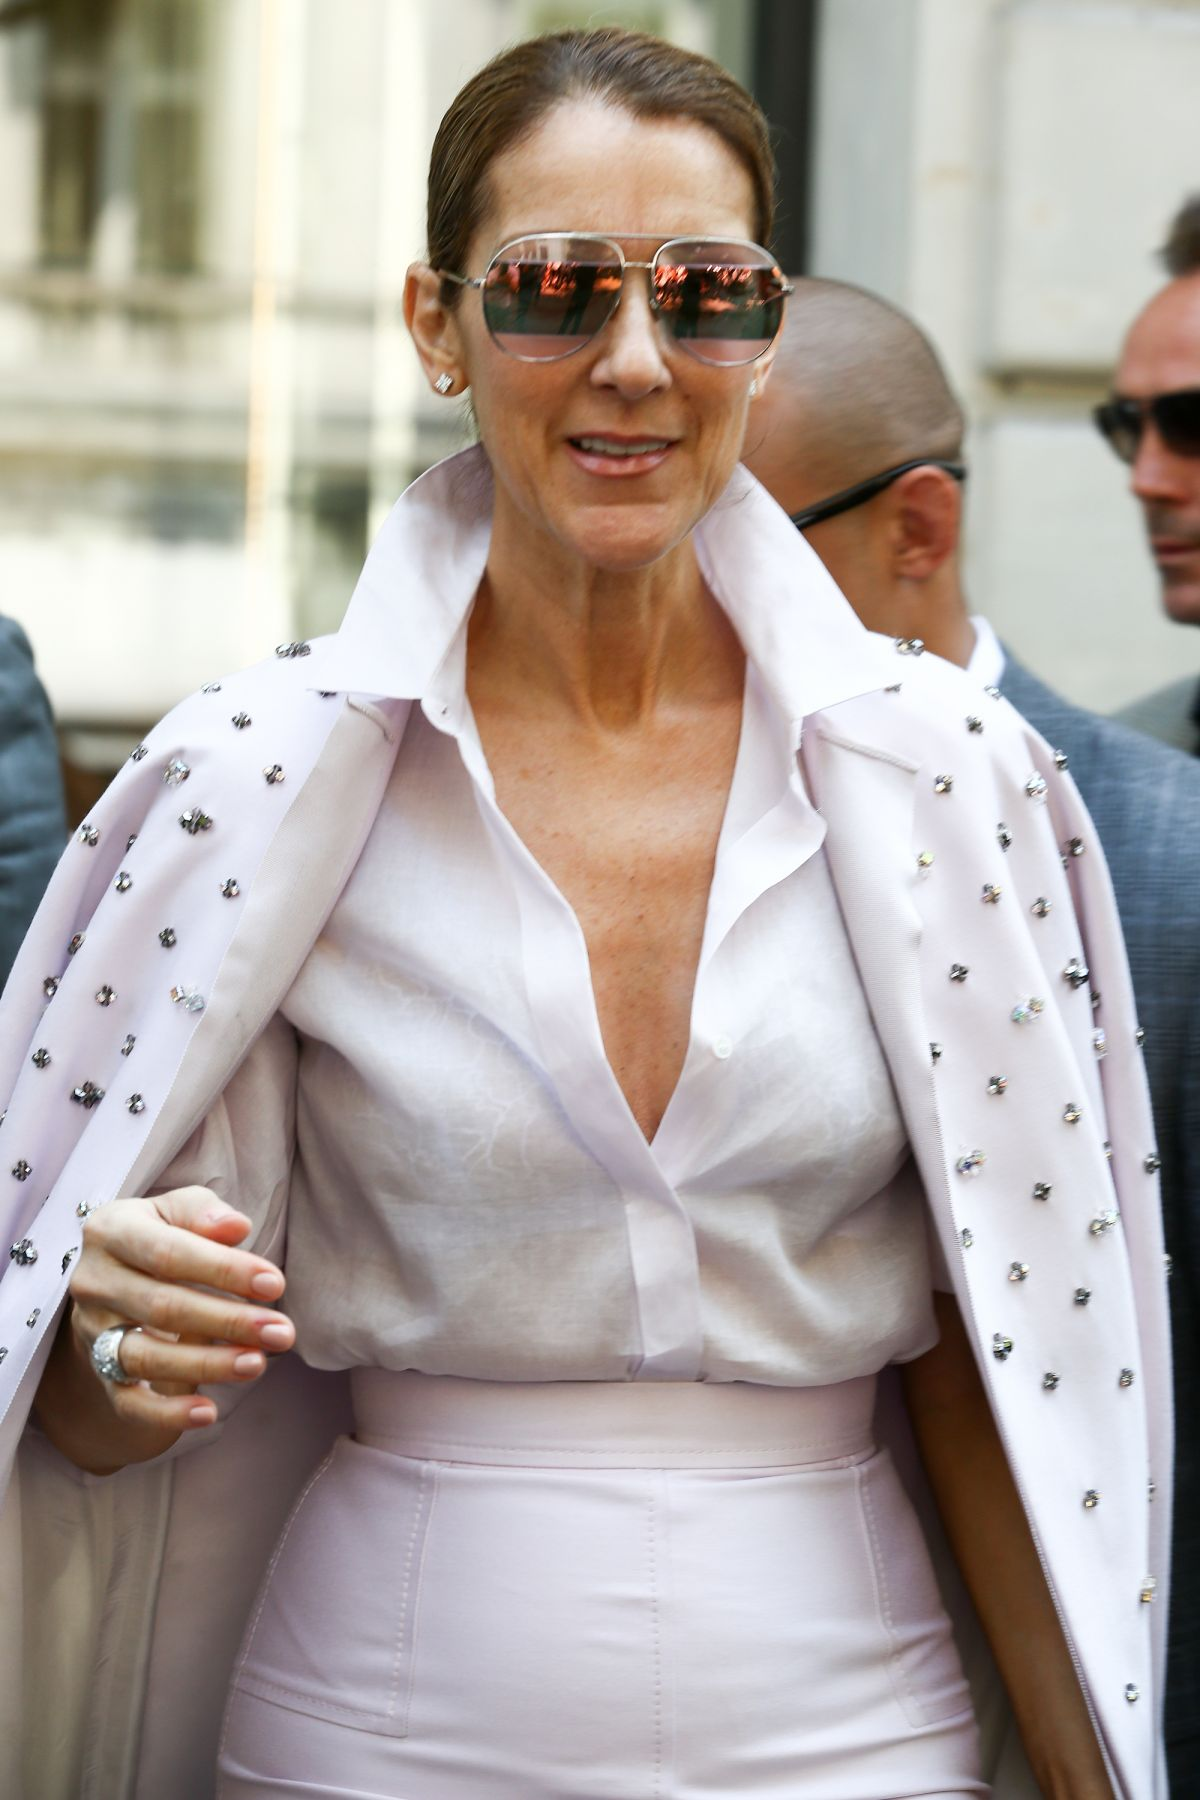 celine dion leaves her hotel in paris 06/20/2017 - hawtcelebs